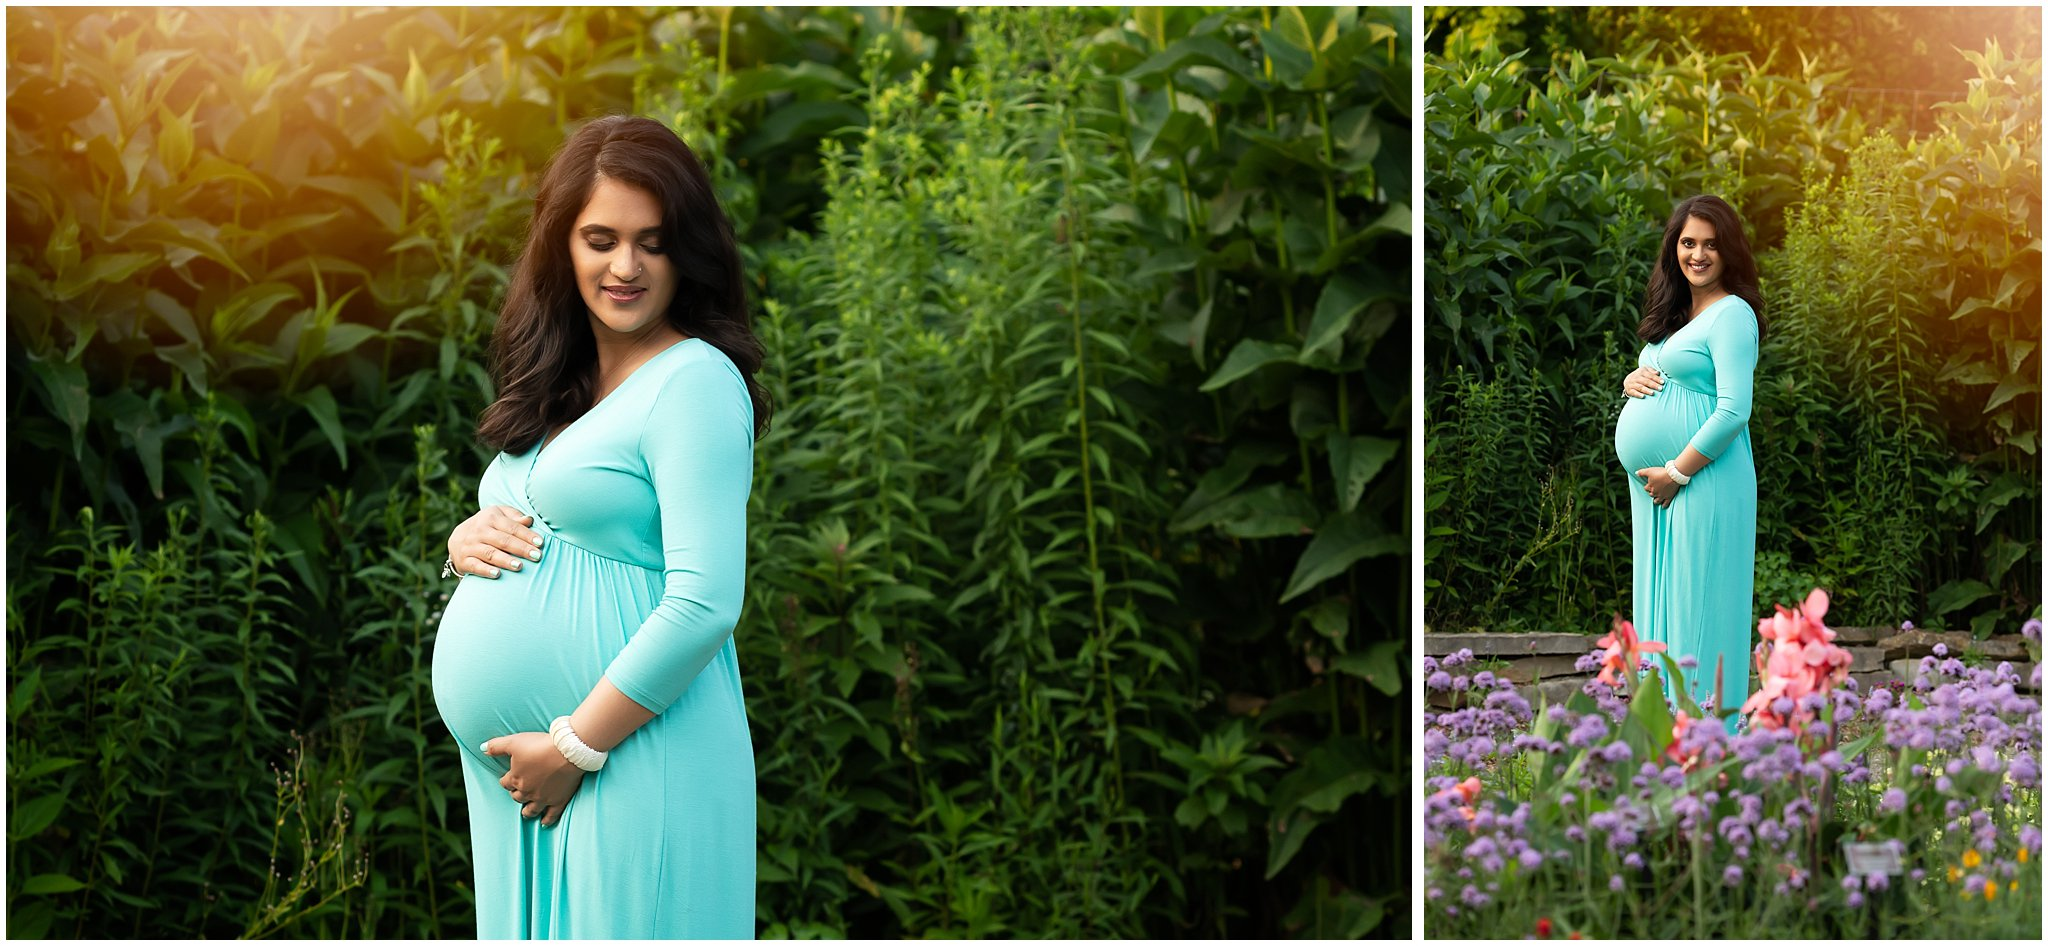 Maternity Photos at Matthaei | Ann Arbor Maternity Photographer